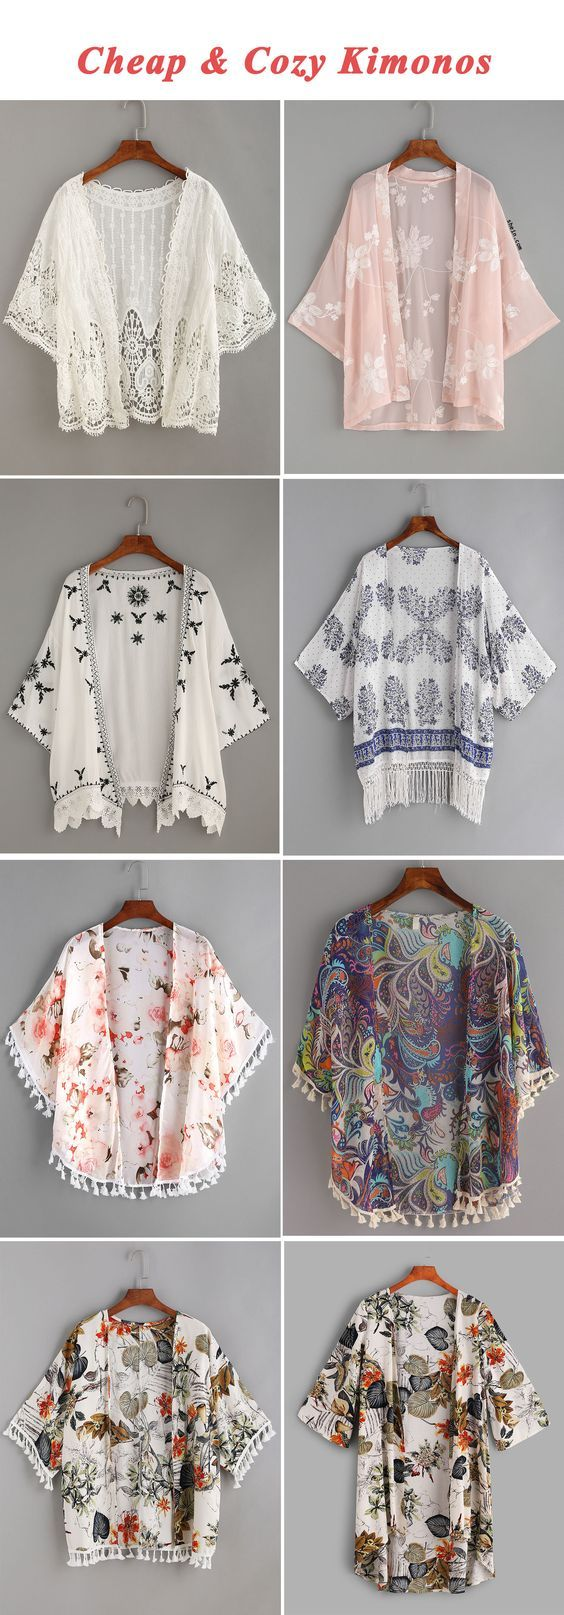 Cheap & cozy kimonos #outfits4school